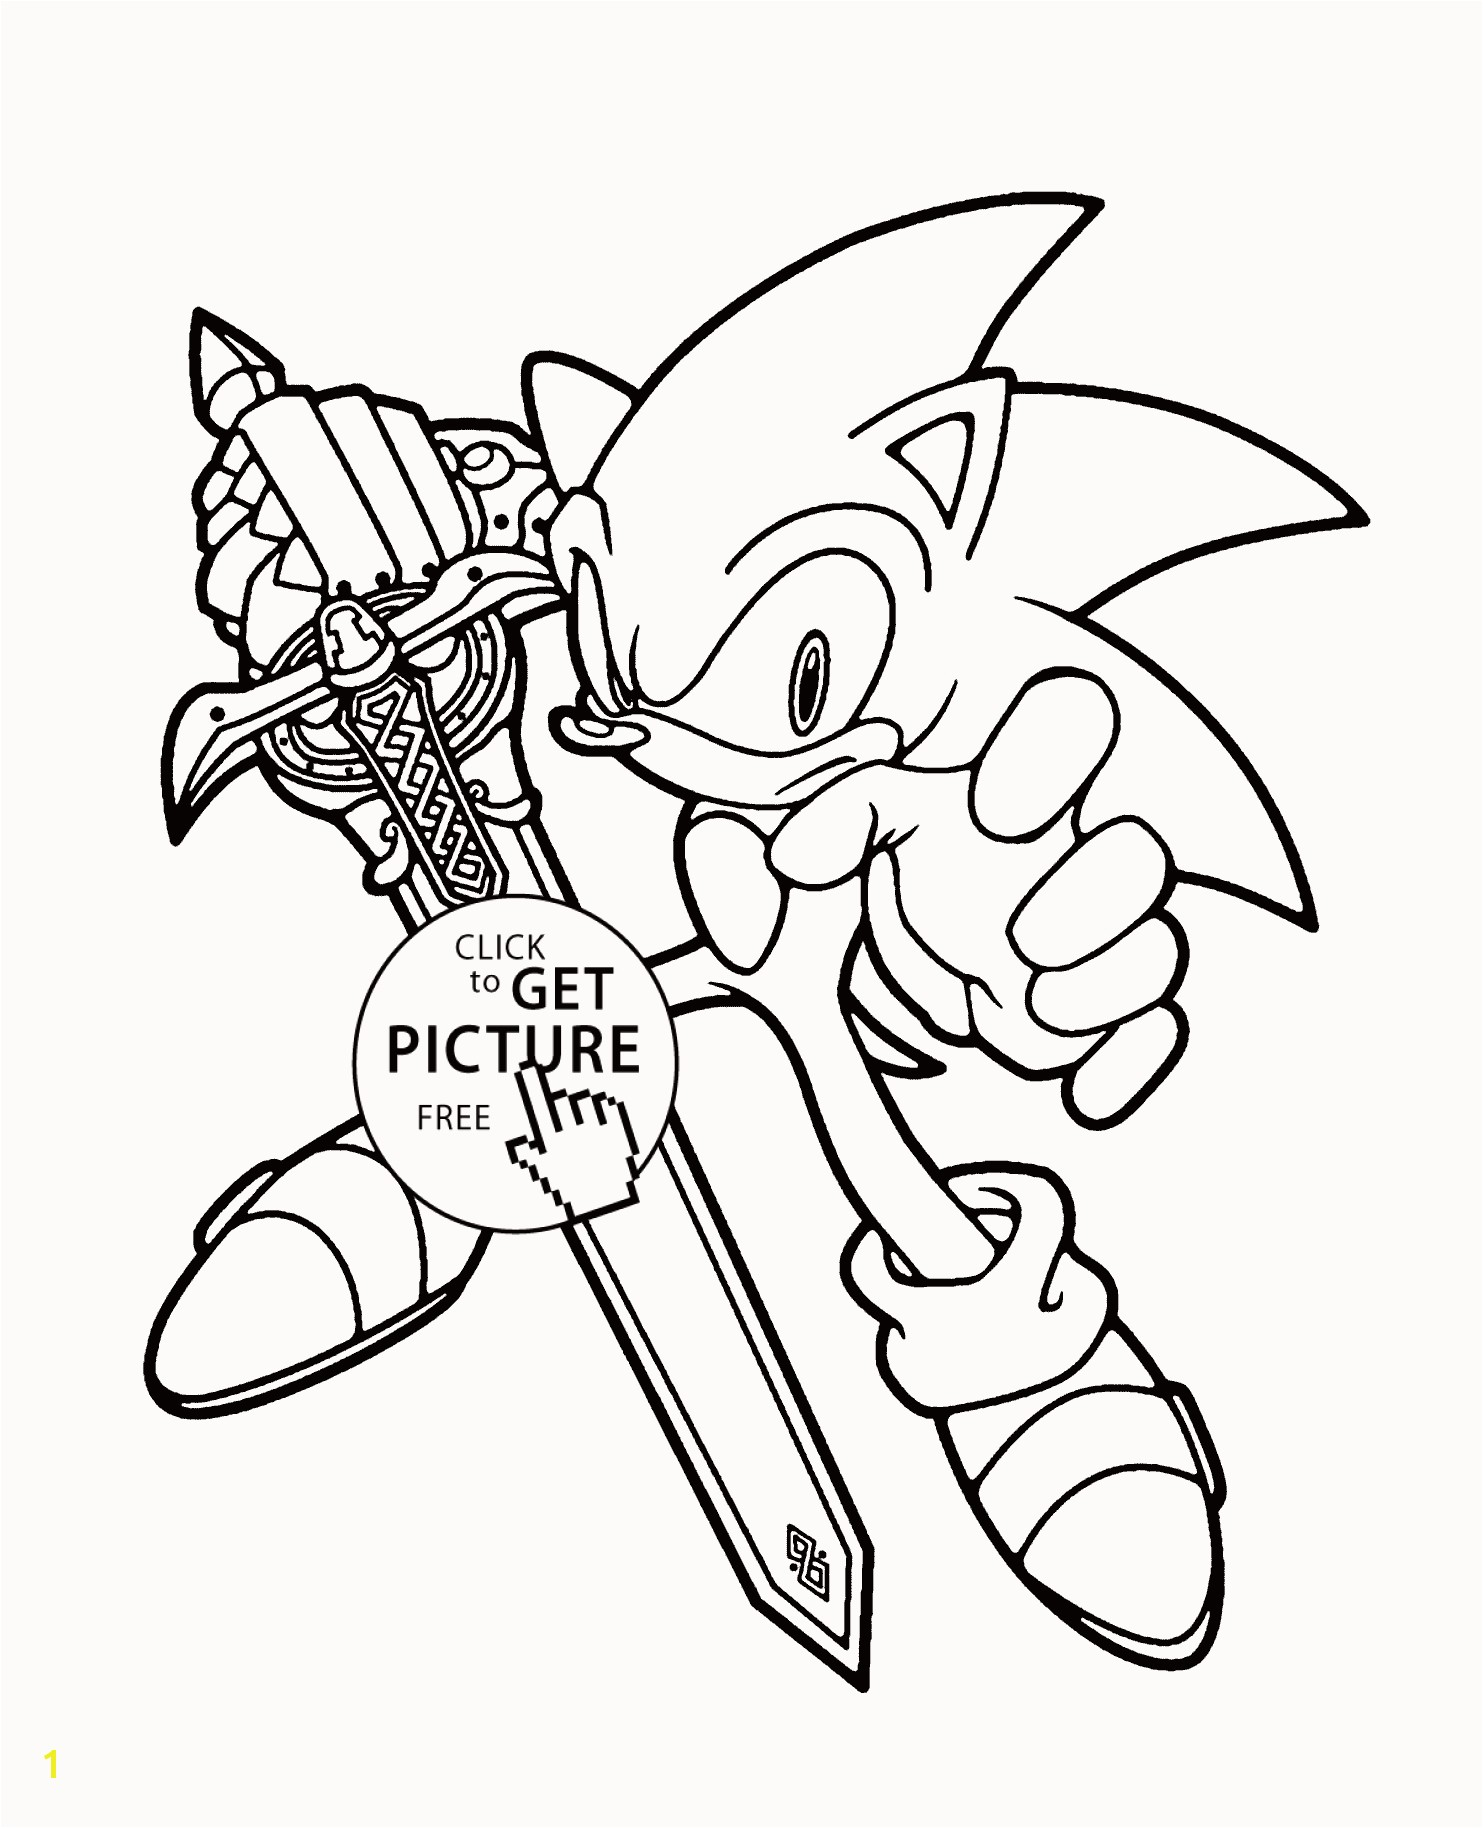 Silver sonic the Hedgehog Coloring Pages 30 New Silver the Hedgehog Coloring Pages